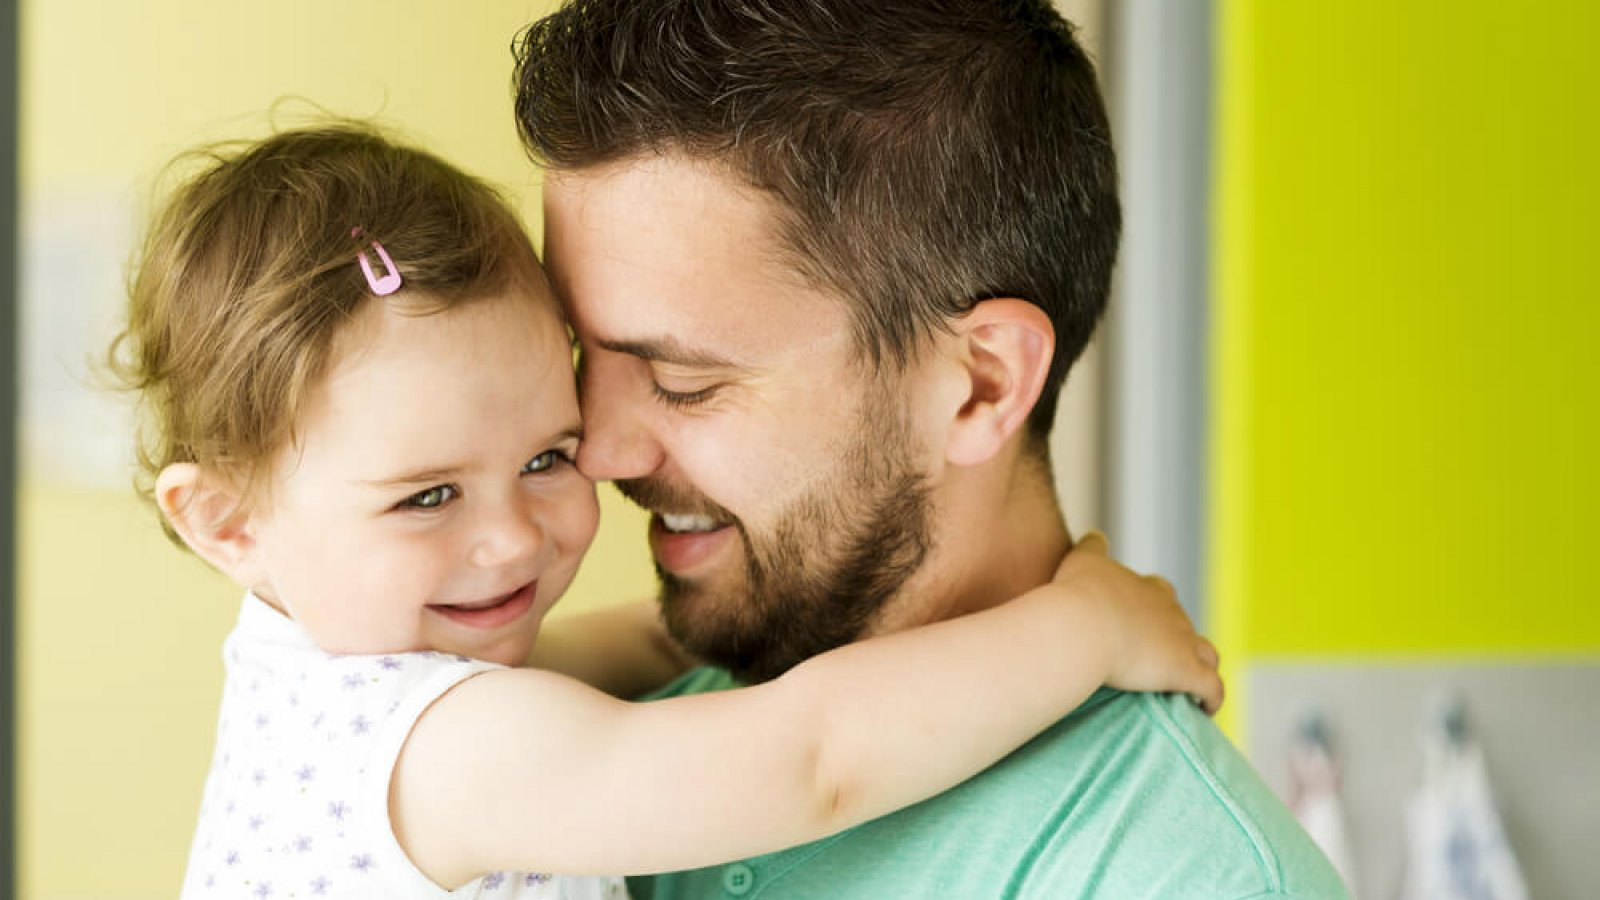 Image of father holding young daughter